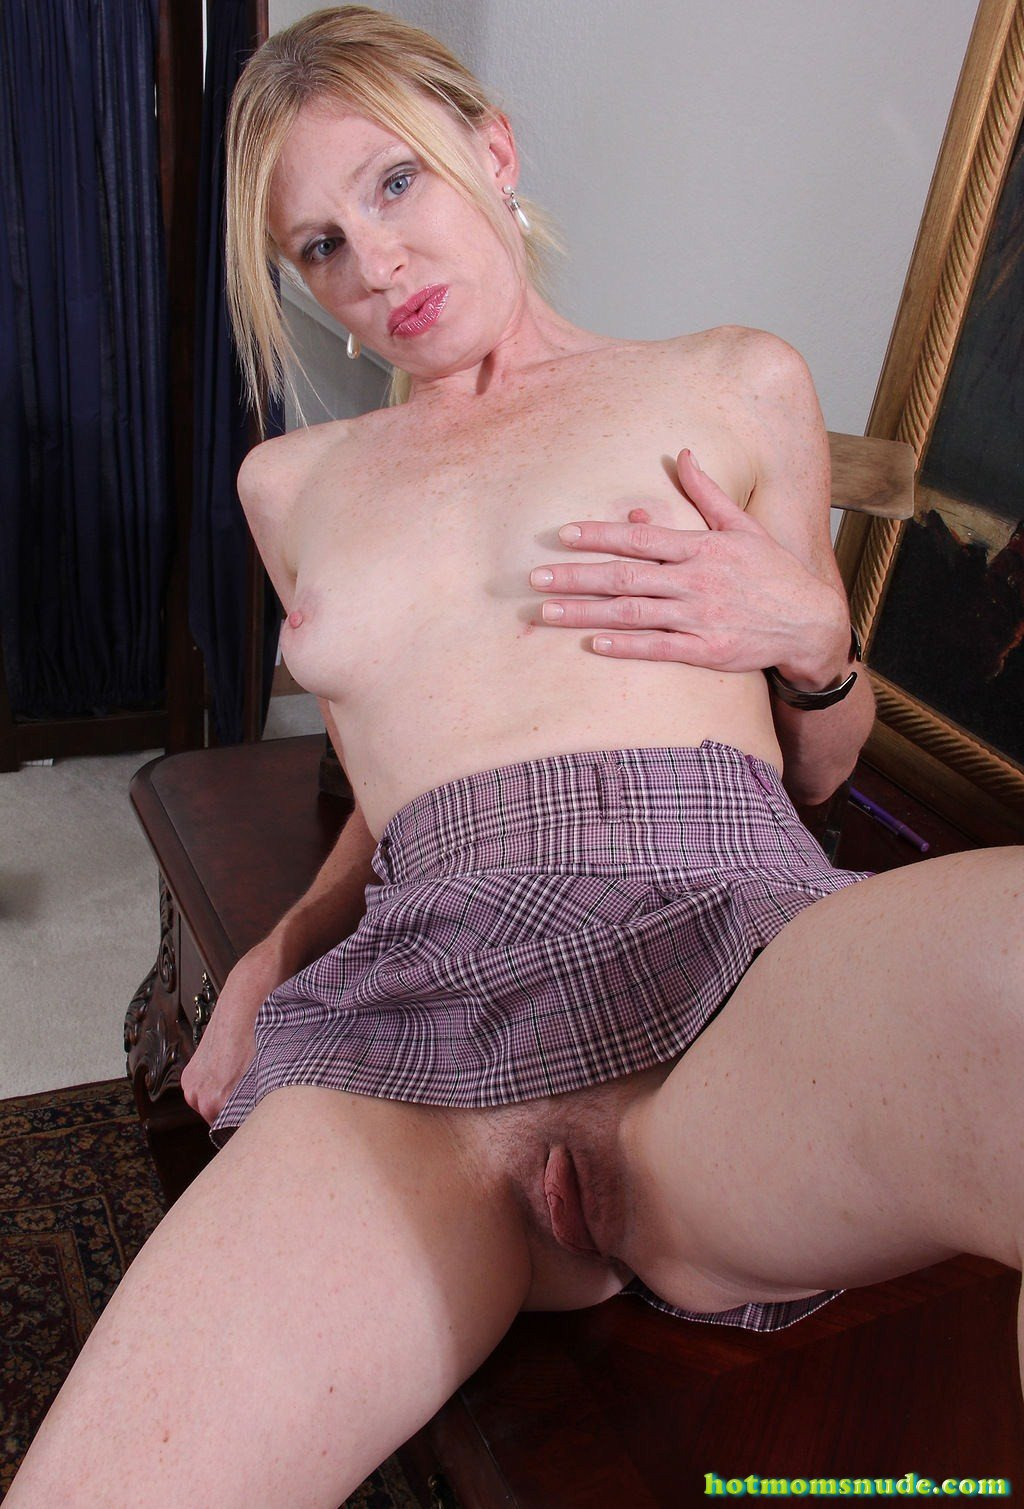 Tommi,Lacey Nude Pics And Biography - Hot Moms Nude-1841